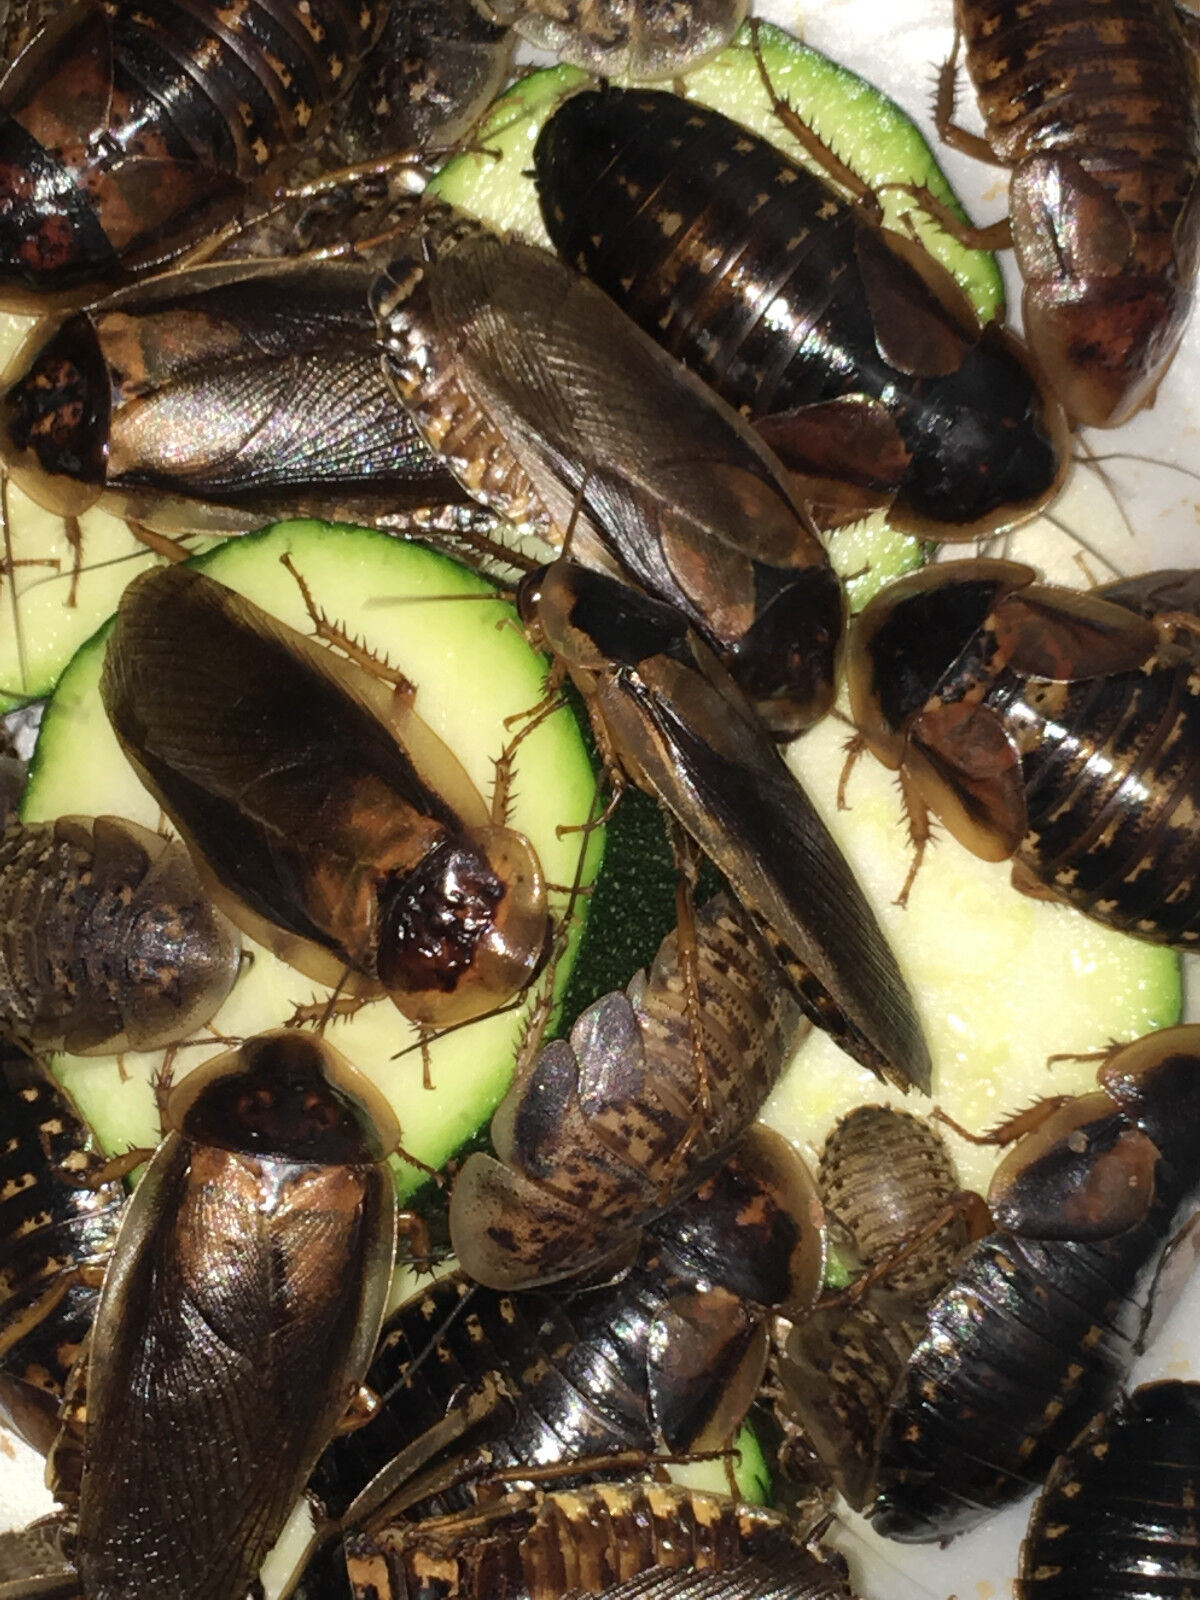 Dubia Roaches 100 Med. Sizes 1/2 To 3/4 In. Fast Free Shipping  - $26.95